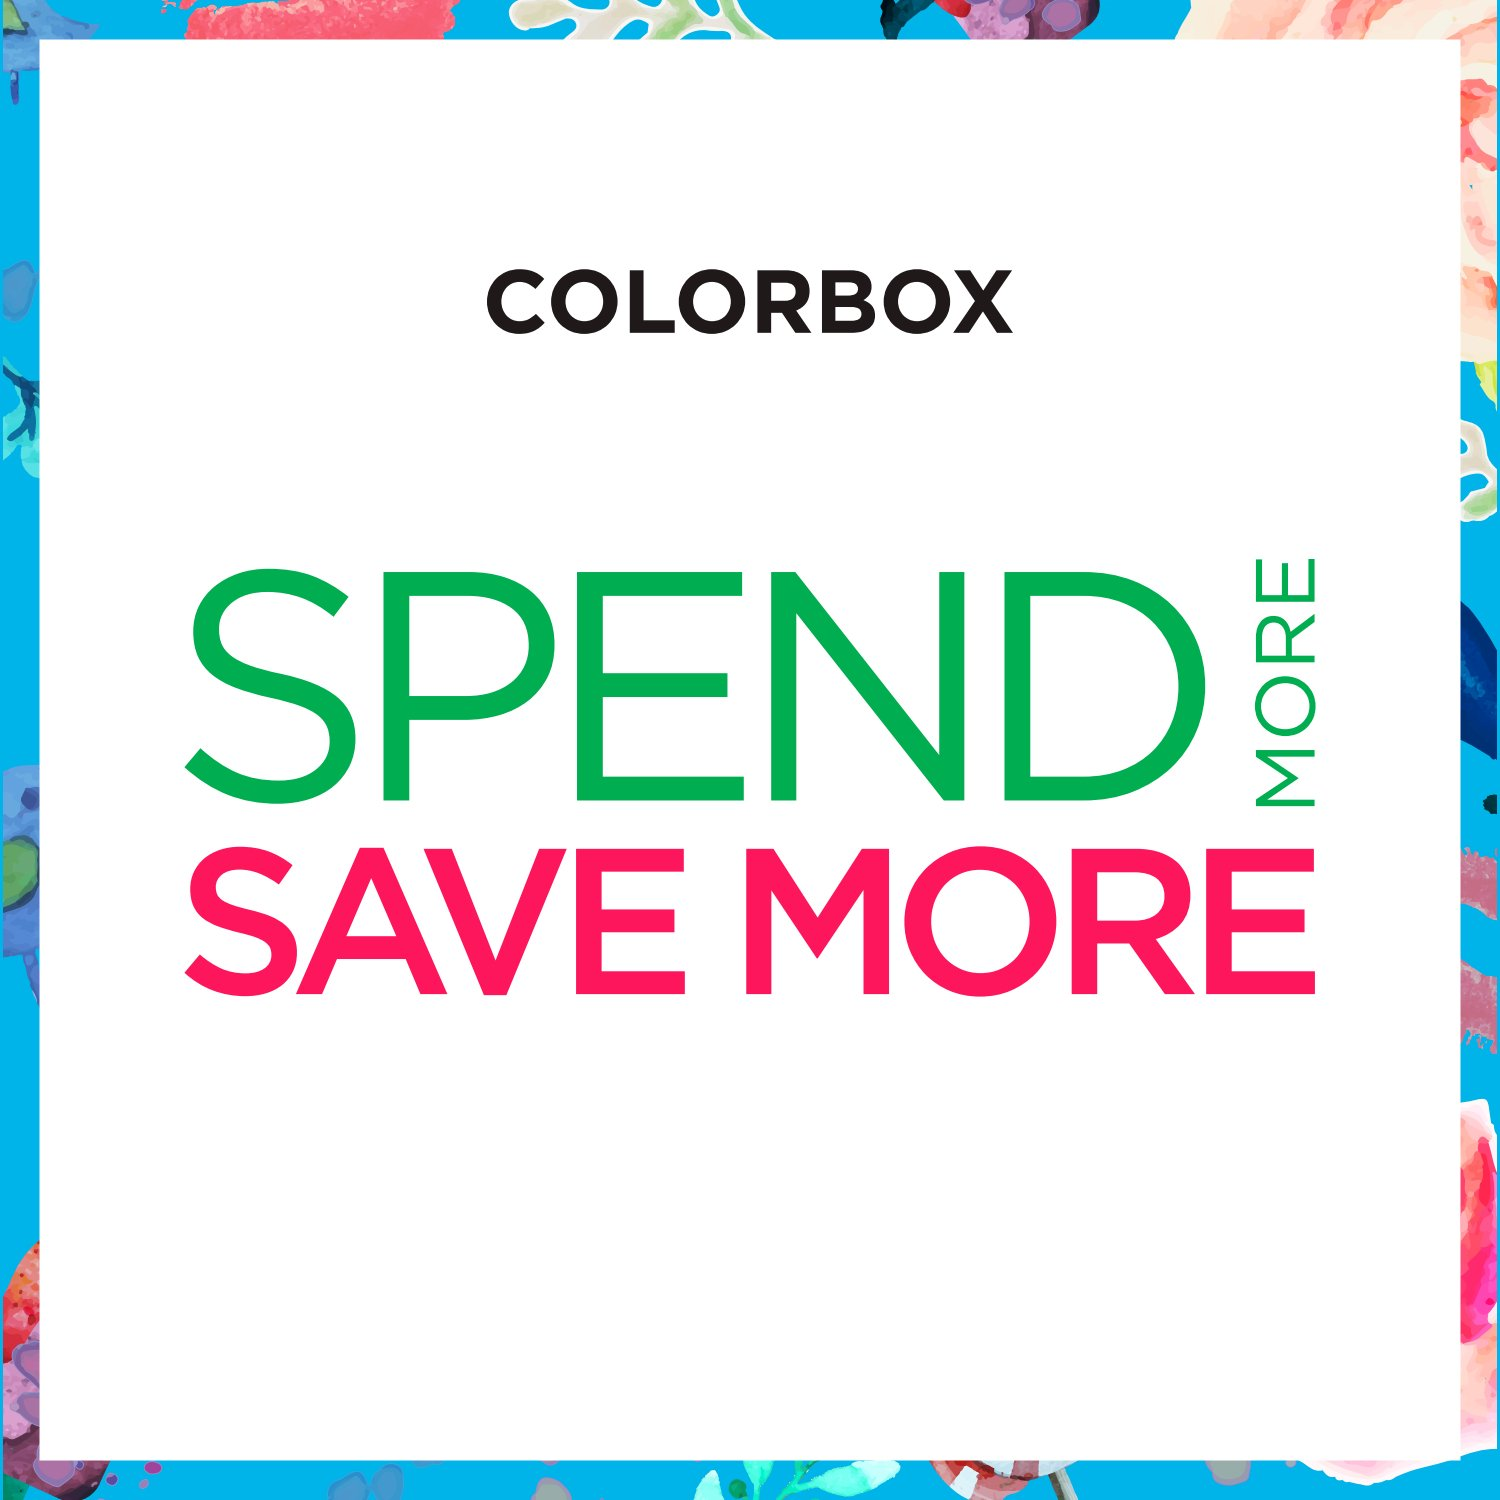 Colorbox Spend More Save More, Periode 1 - 14 Februari 2017